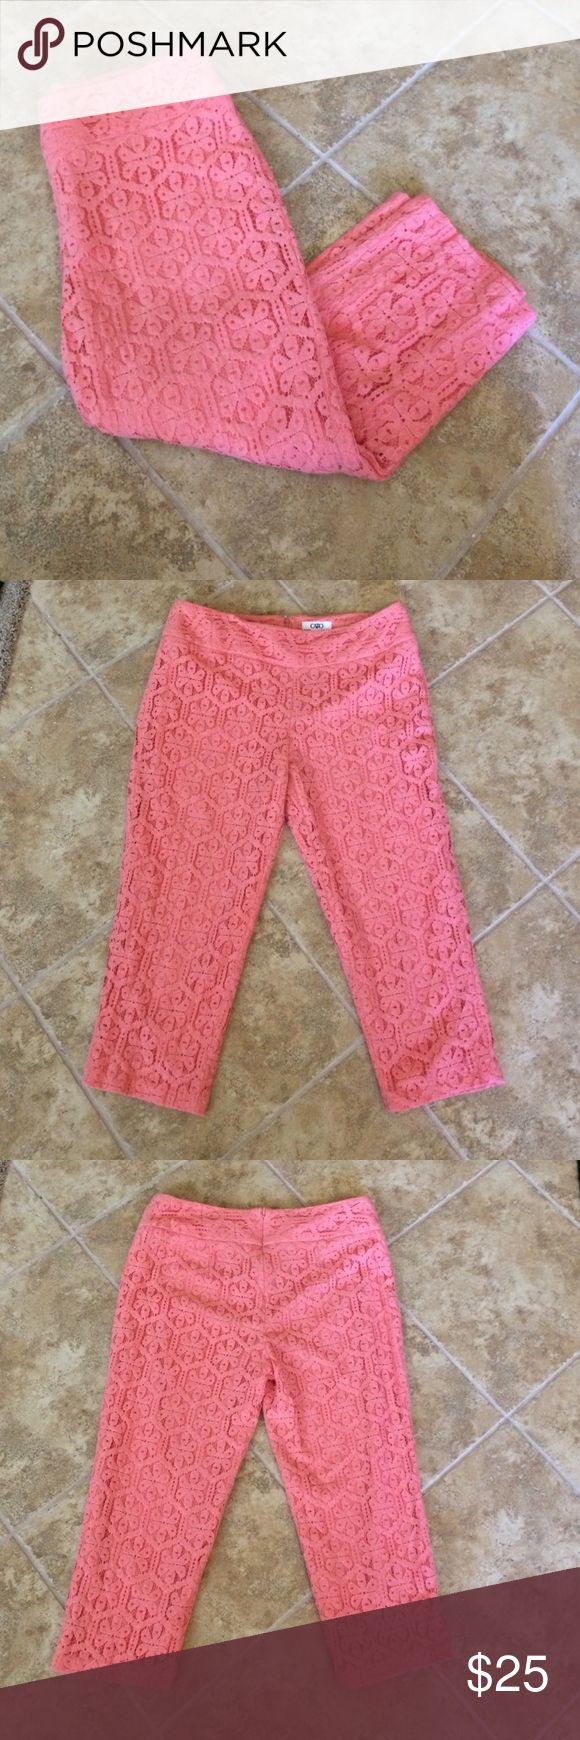 Coral capris from Cato. Size 8. Coral capris from Cato. Size 8. 60% cotton, 40% nylon. Adorable flower patterned Capri pants. Cato Pants Capris